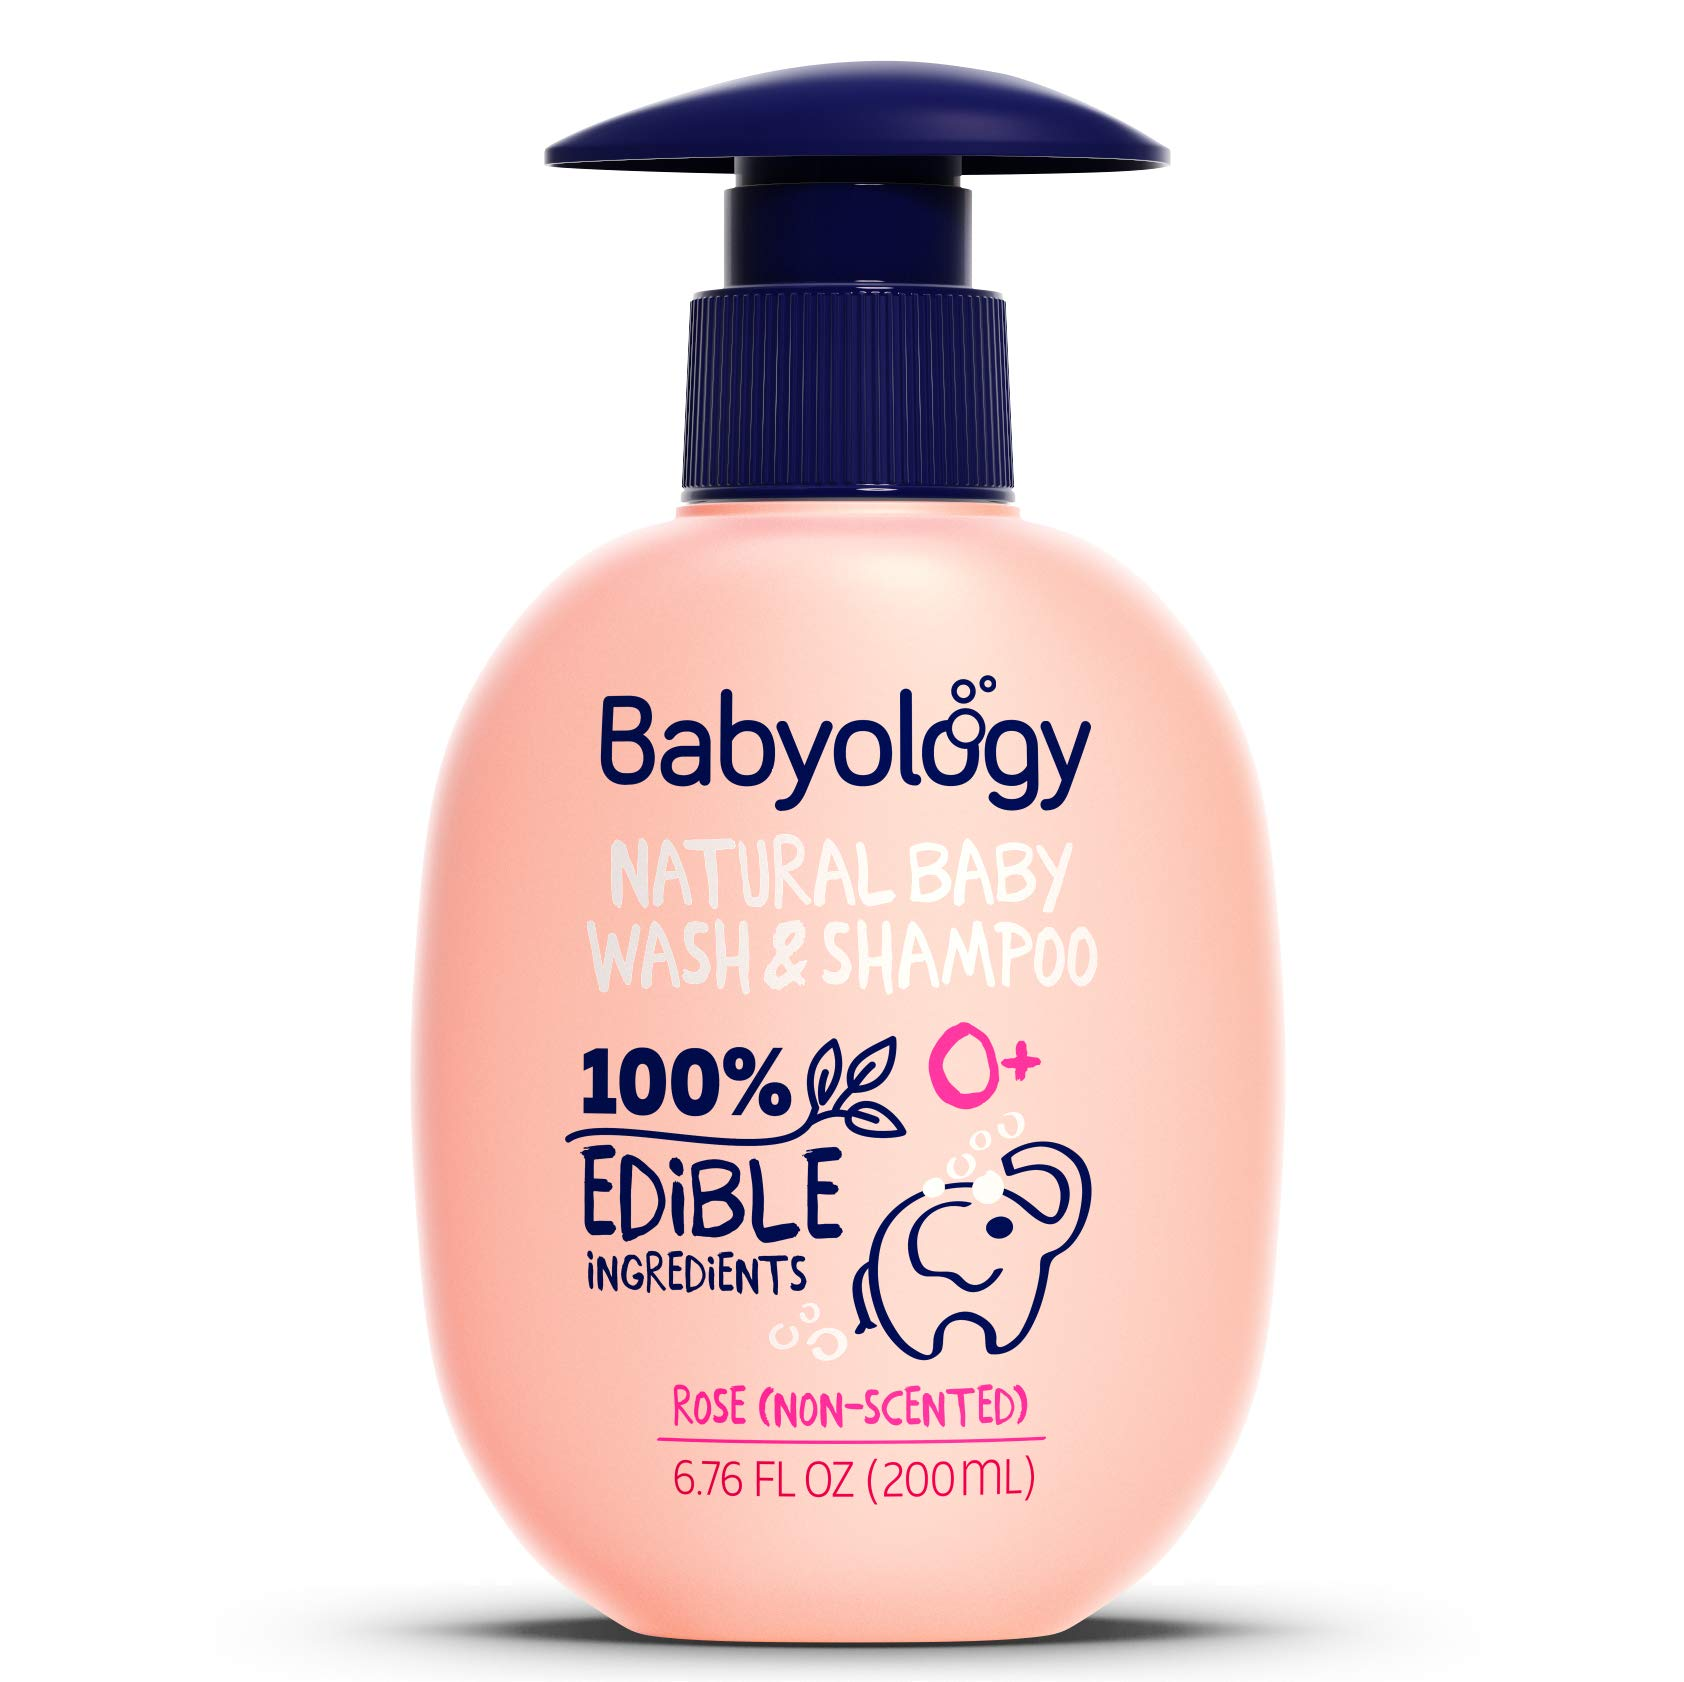 Babyology - 100% Edible Ingredients - Baby Wash & Shampoo - Non-scented (Organic Rose Water) - Clinically Tested - Tear-Free - 6,67 FL. OZ - Perfect Baby Shower Gift by Babyology